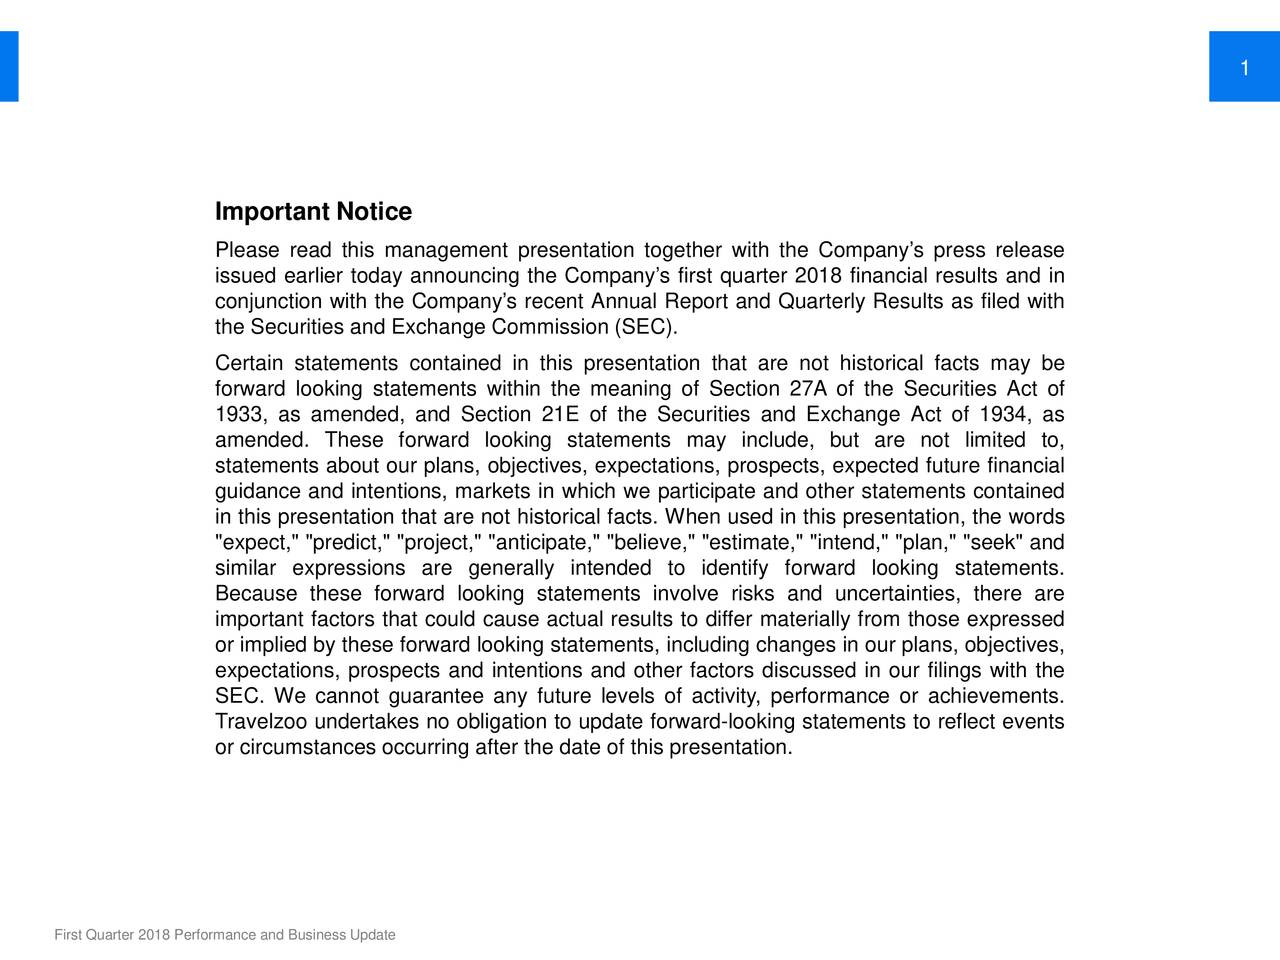 "Important Notice Please read this management presentation together with the Company's press release issued earlier today announcing the Company's first quarter 2018 financial results and in conjunction with the Company's recent Annual Report and Quarterly Results as filed with the Securities and Exchange Commission (SEC). Certain statements contained in this presentation that are not historical facts may be forward looking statements within the meaning of Section 27A of the Securities Act of 933, as amended, and Section 21E of the Securities and Exchange Act of 1934, as amended. These forward looking statements may include, but are not limited to, statements about our plans, objectives, expectations, prospects, expected future financial guidance and intentions, markets in which we participate and other statements contained in this presentation that are not historical facts. When used in this presentation, the words ""expect,"" ""predict,"" ""project,"" ""anticipate,"" ""believe,"" ""estimate,"" ""intend,"" ""plan,"" ""seek"" and similar expressions are generally intended to identify forward looking statements. Because these forward looking statements involve risks and uncertainties, there are important factors that could cause actual results to differ materially from those expressed or implied by these forward looking statements, including changes in our plans, objectives, expectations, prospects and intentions and other factors discussed in our filings with the SEC. We cannot guarantee any future levels of activity, performance or achievements. Travelzoo undertakes no obligation to update forward-looking statements to reflect events or circumstances occurring after the date of this presentation. First Quarter 2018 Performance and Business Update"